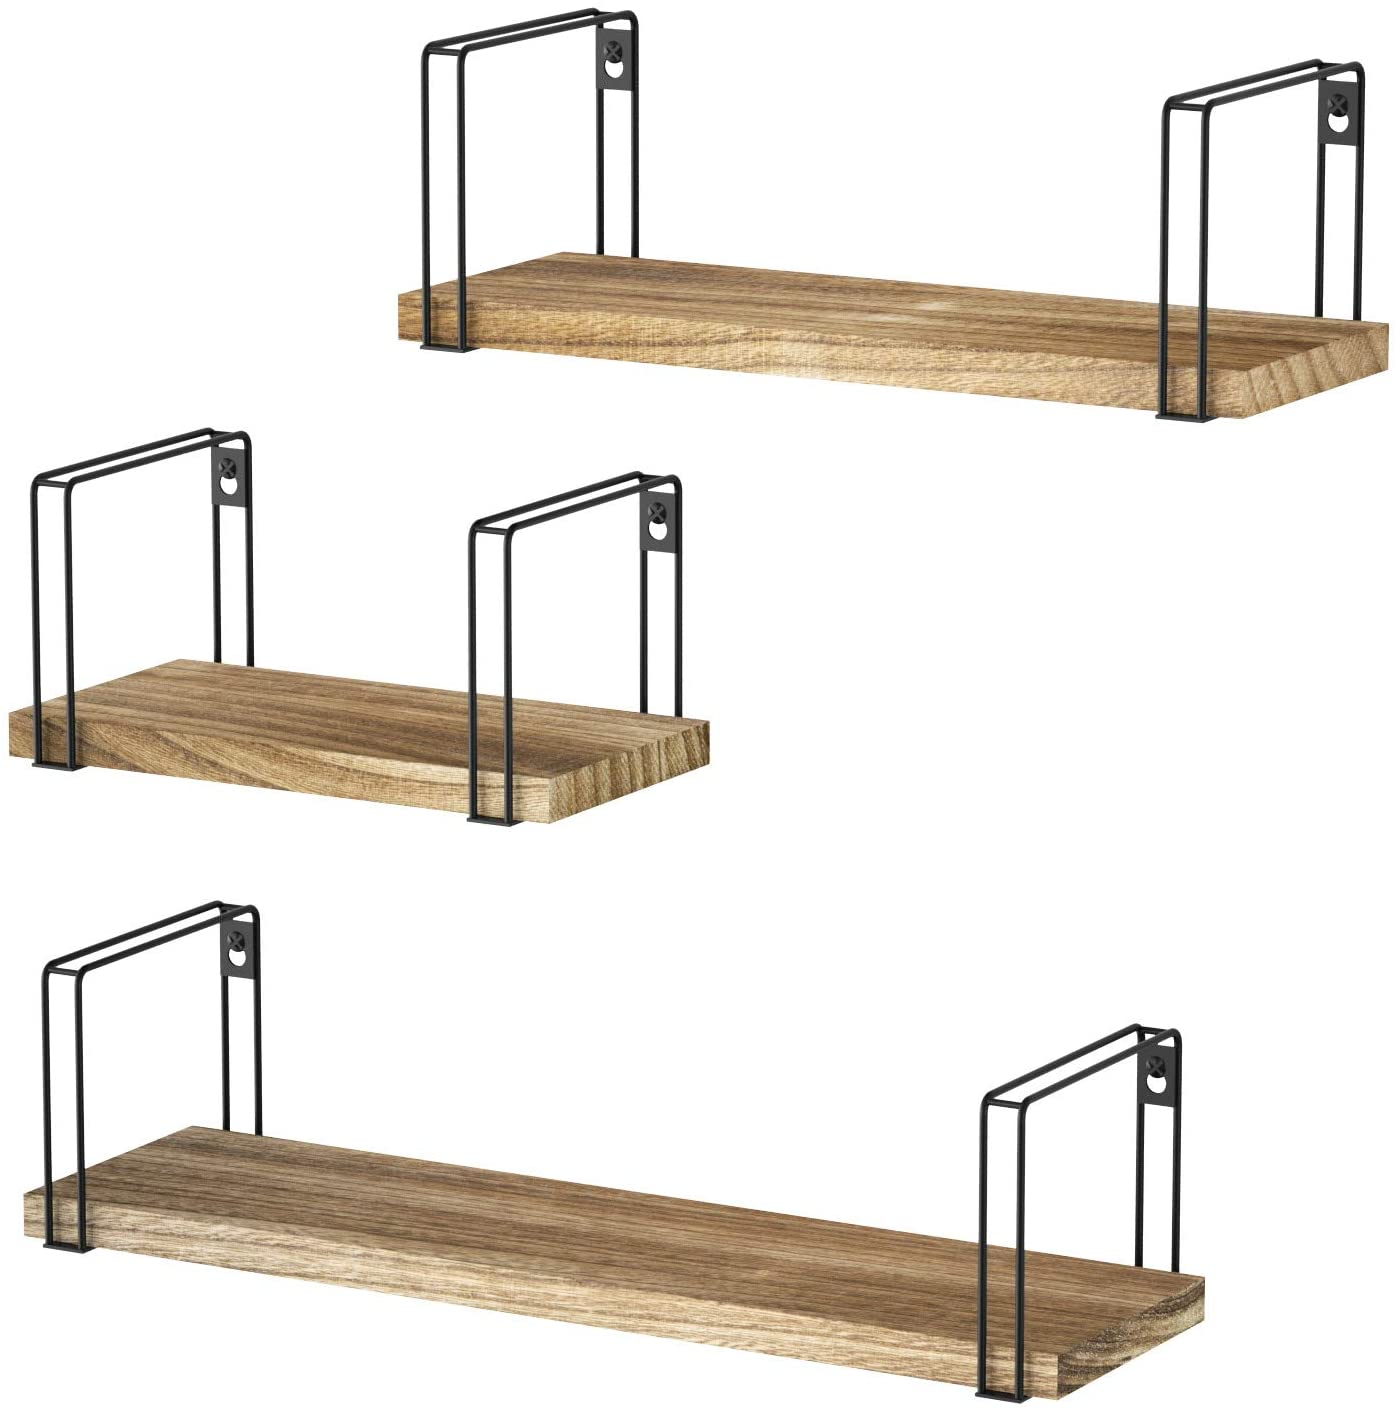 Rustic Floating Shelves, Wood Wall Shelves Set Of 3, Wall Mounted Hanging Shelves For Bedroom, Living Room, Kitchen, Bathroom - Walmart.com - Walmart.com